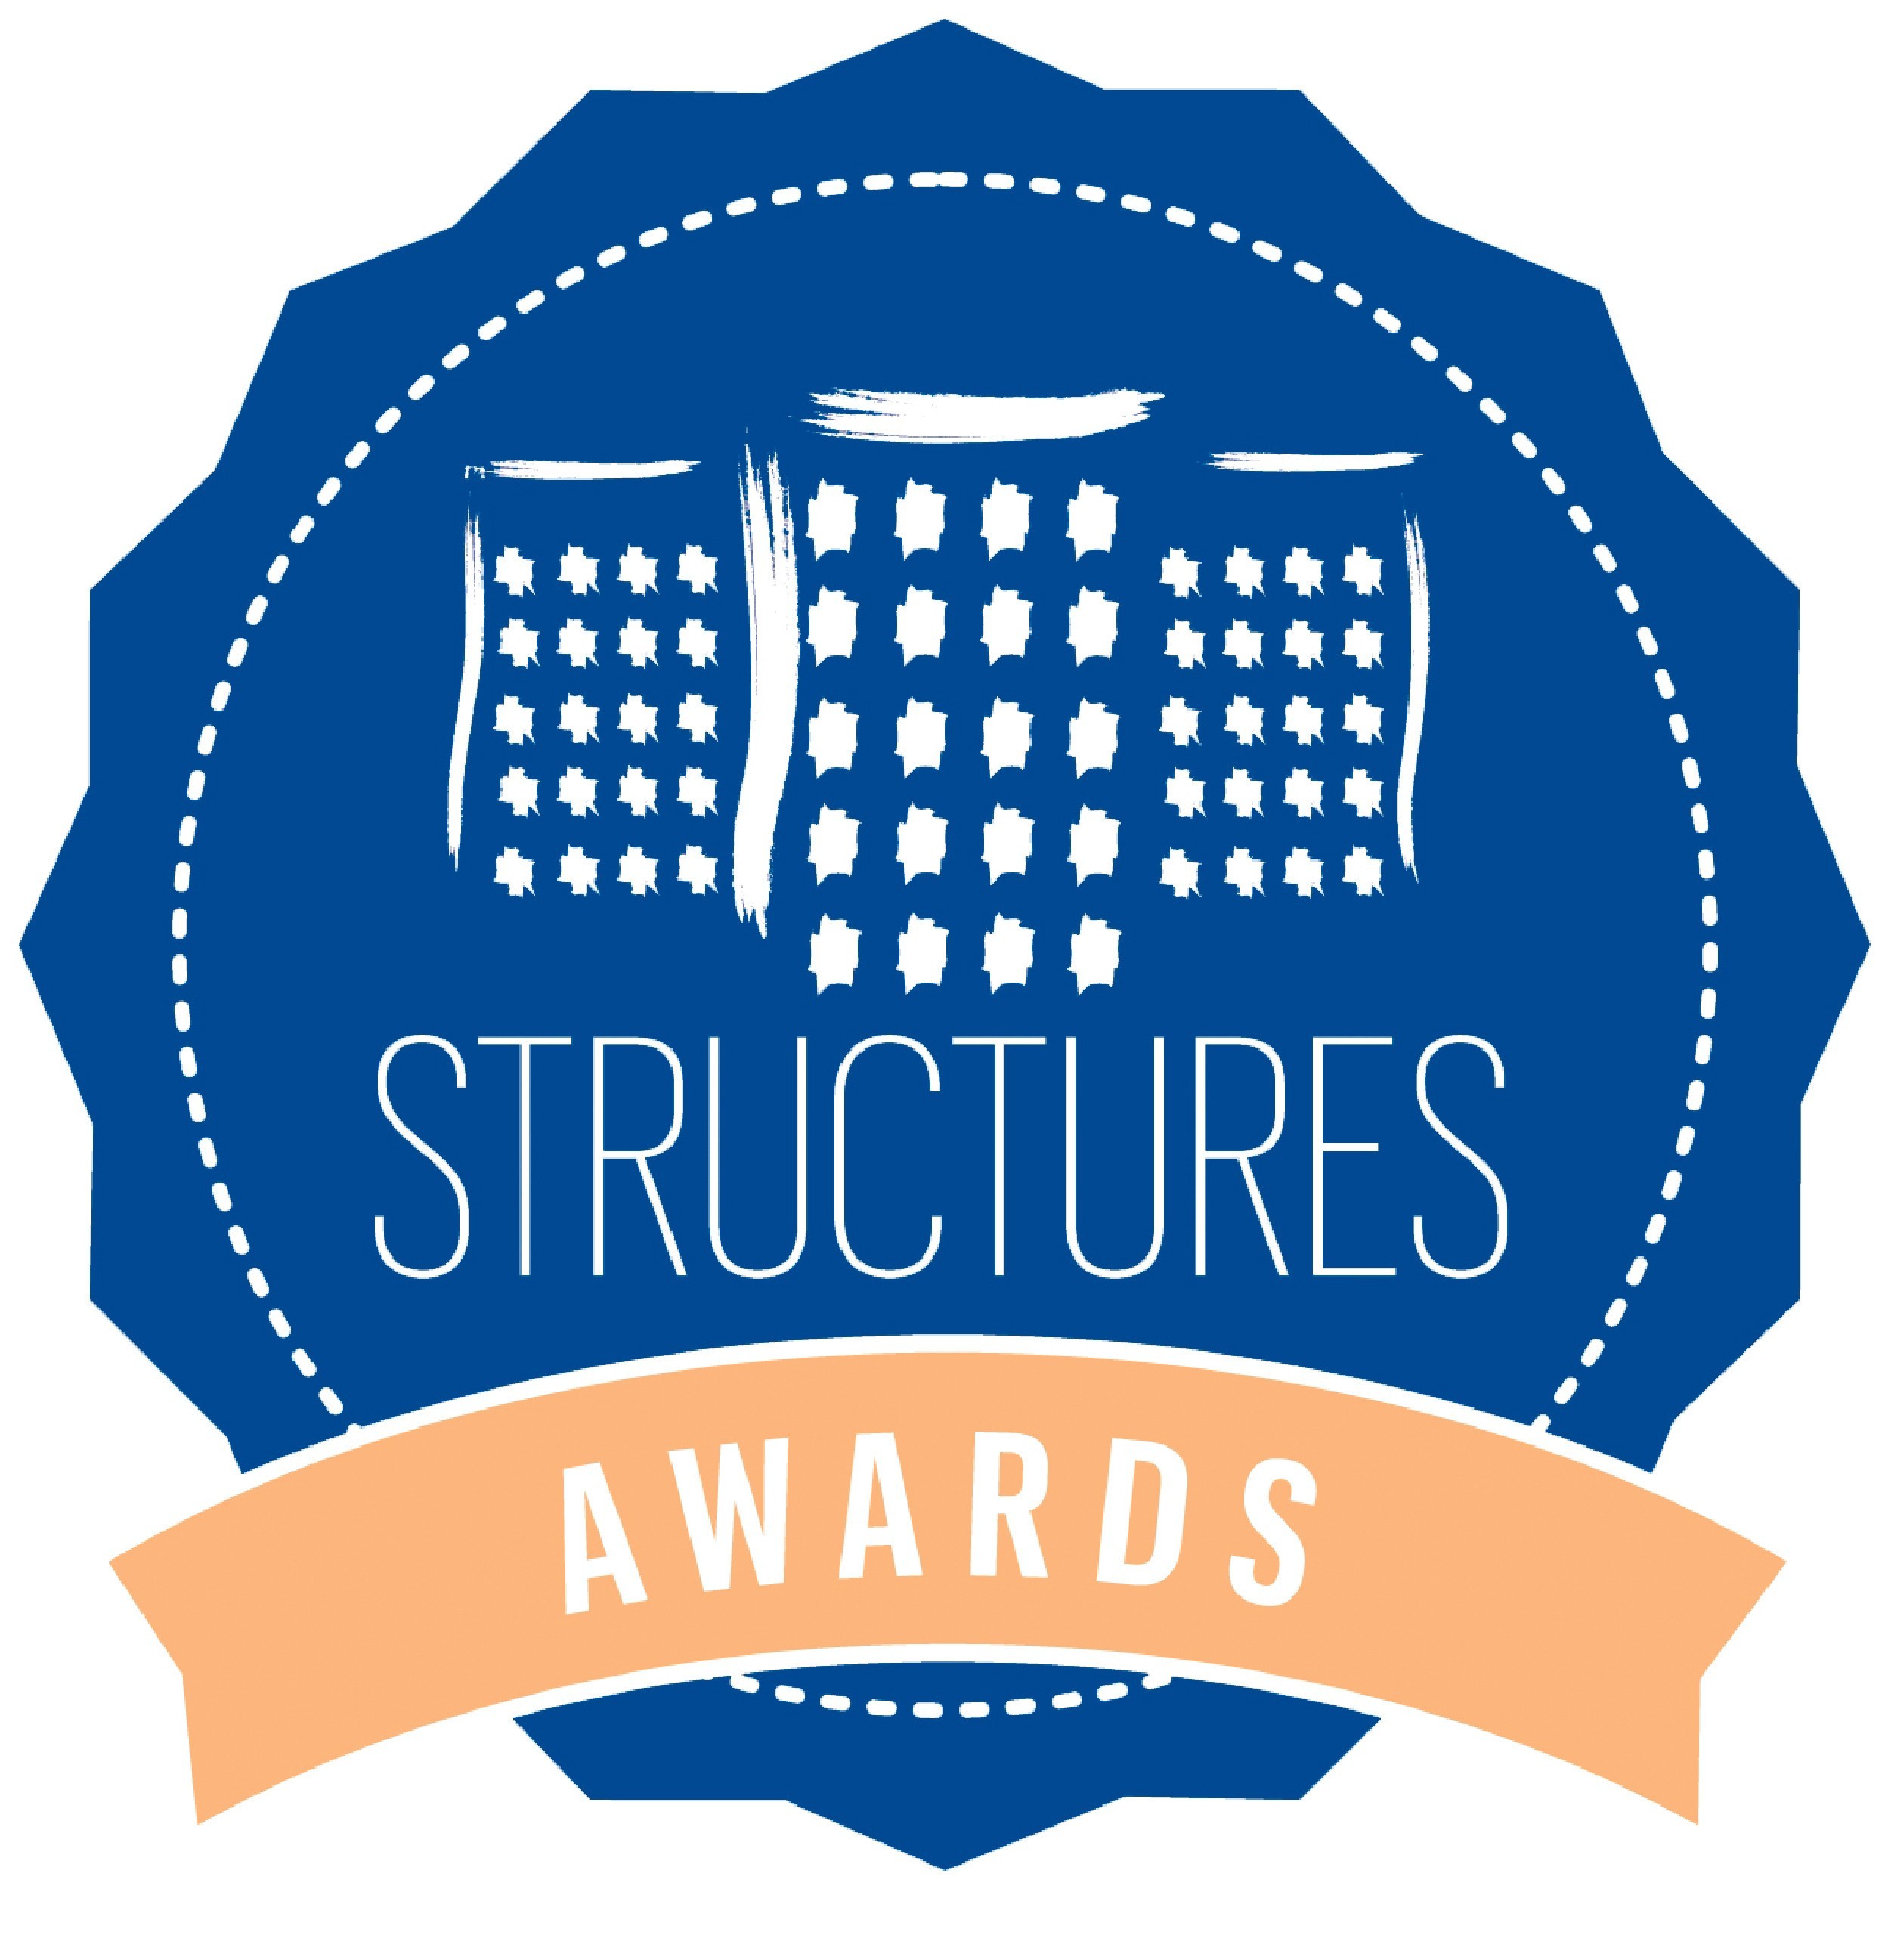 Award: 2016 Silicon Valley Business Journal Structures Awards: Best Green Project (AP + I Office)